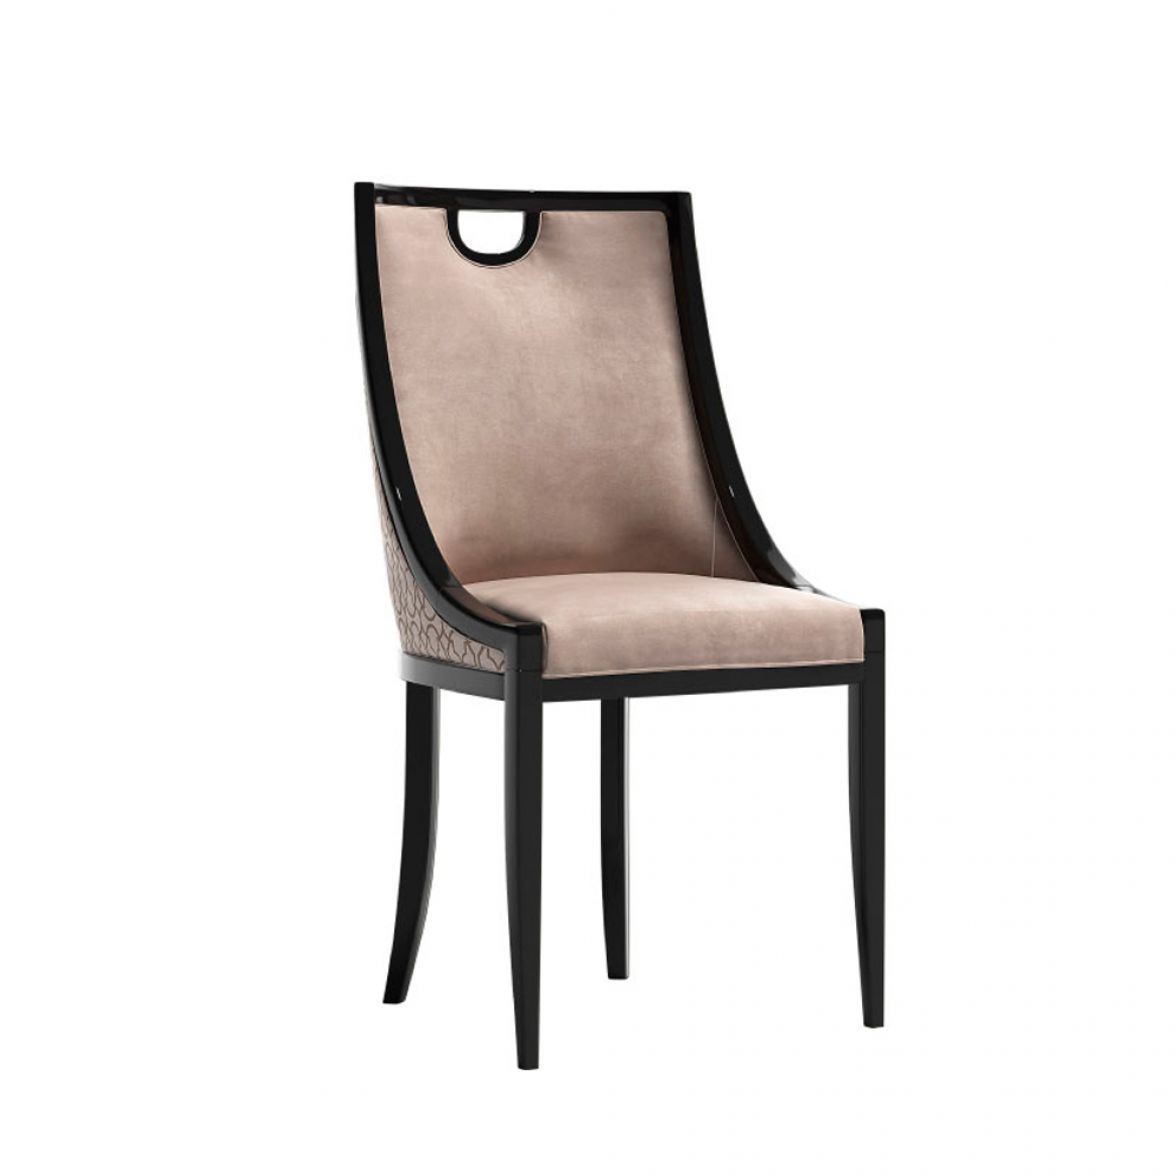 Karab chair